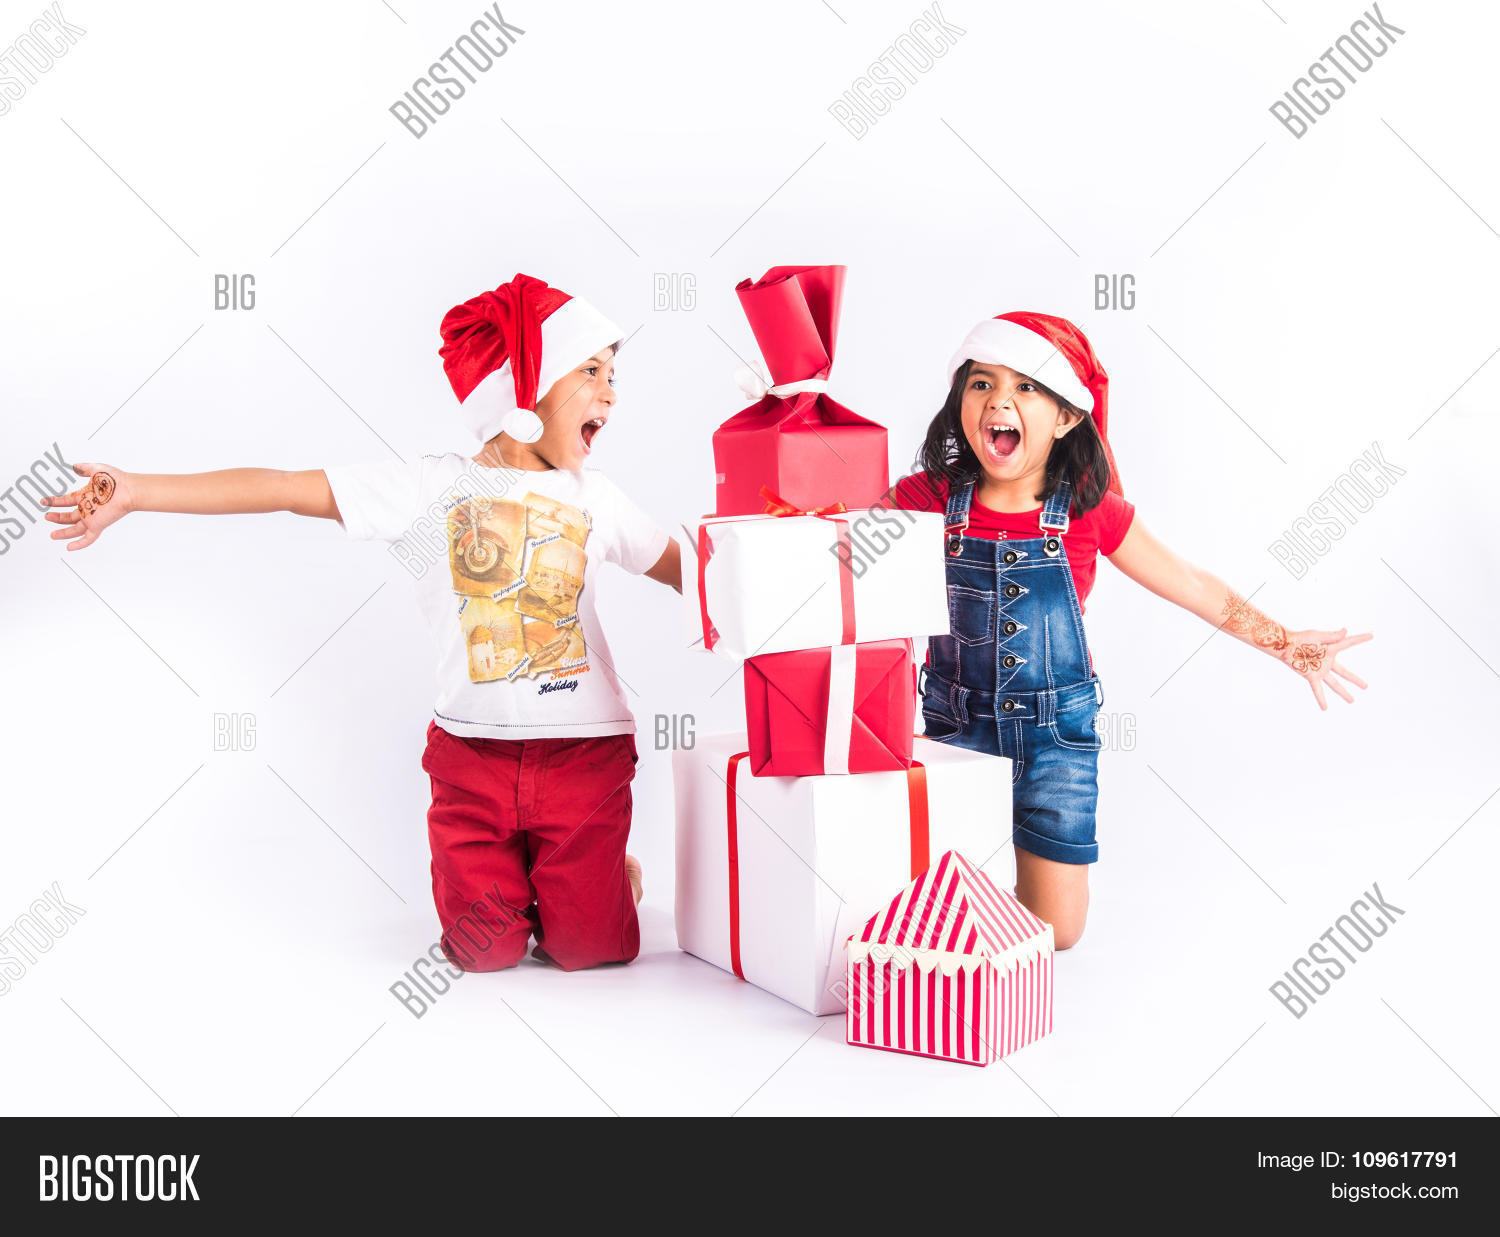 Indian Kids Christmas Image & Photo (Free Trial) | Bigstock